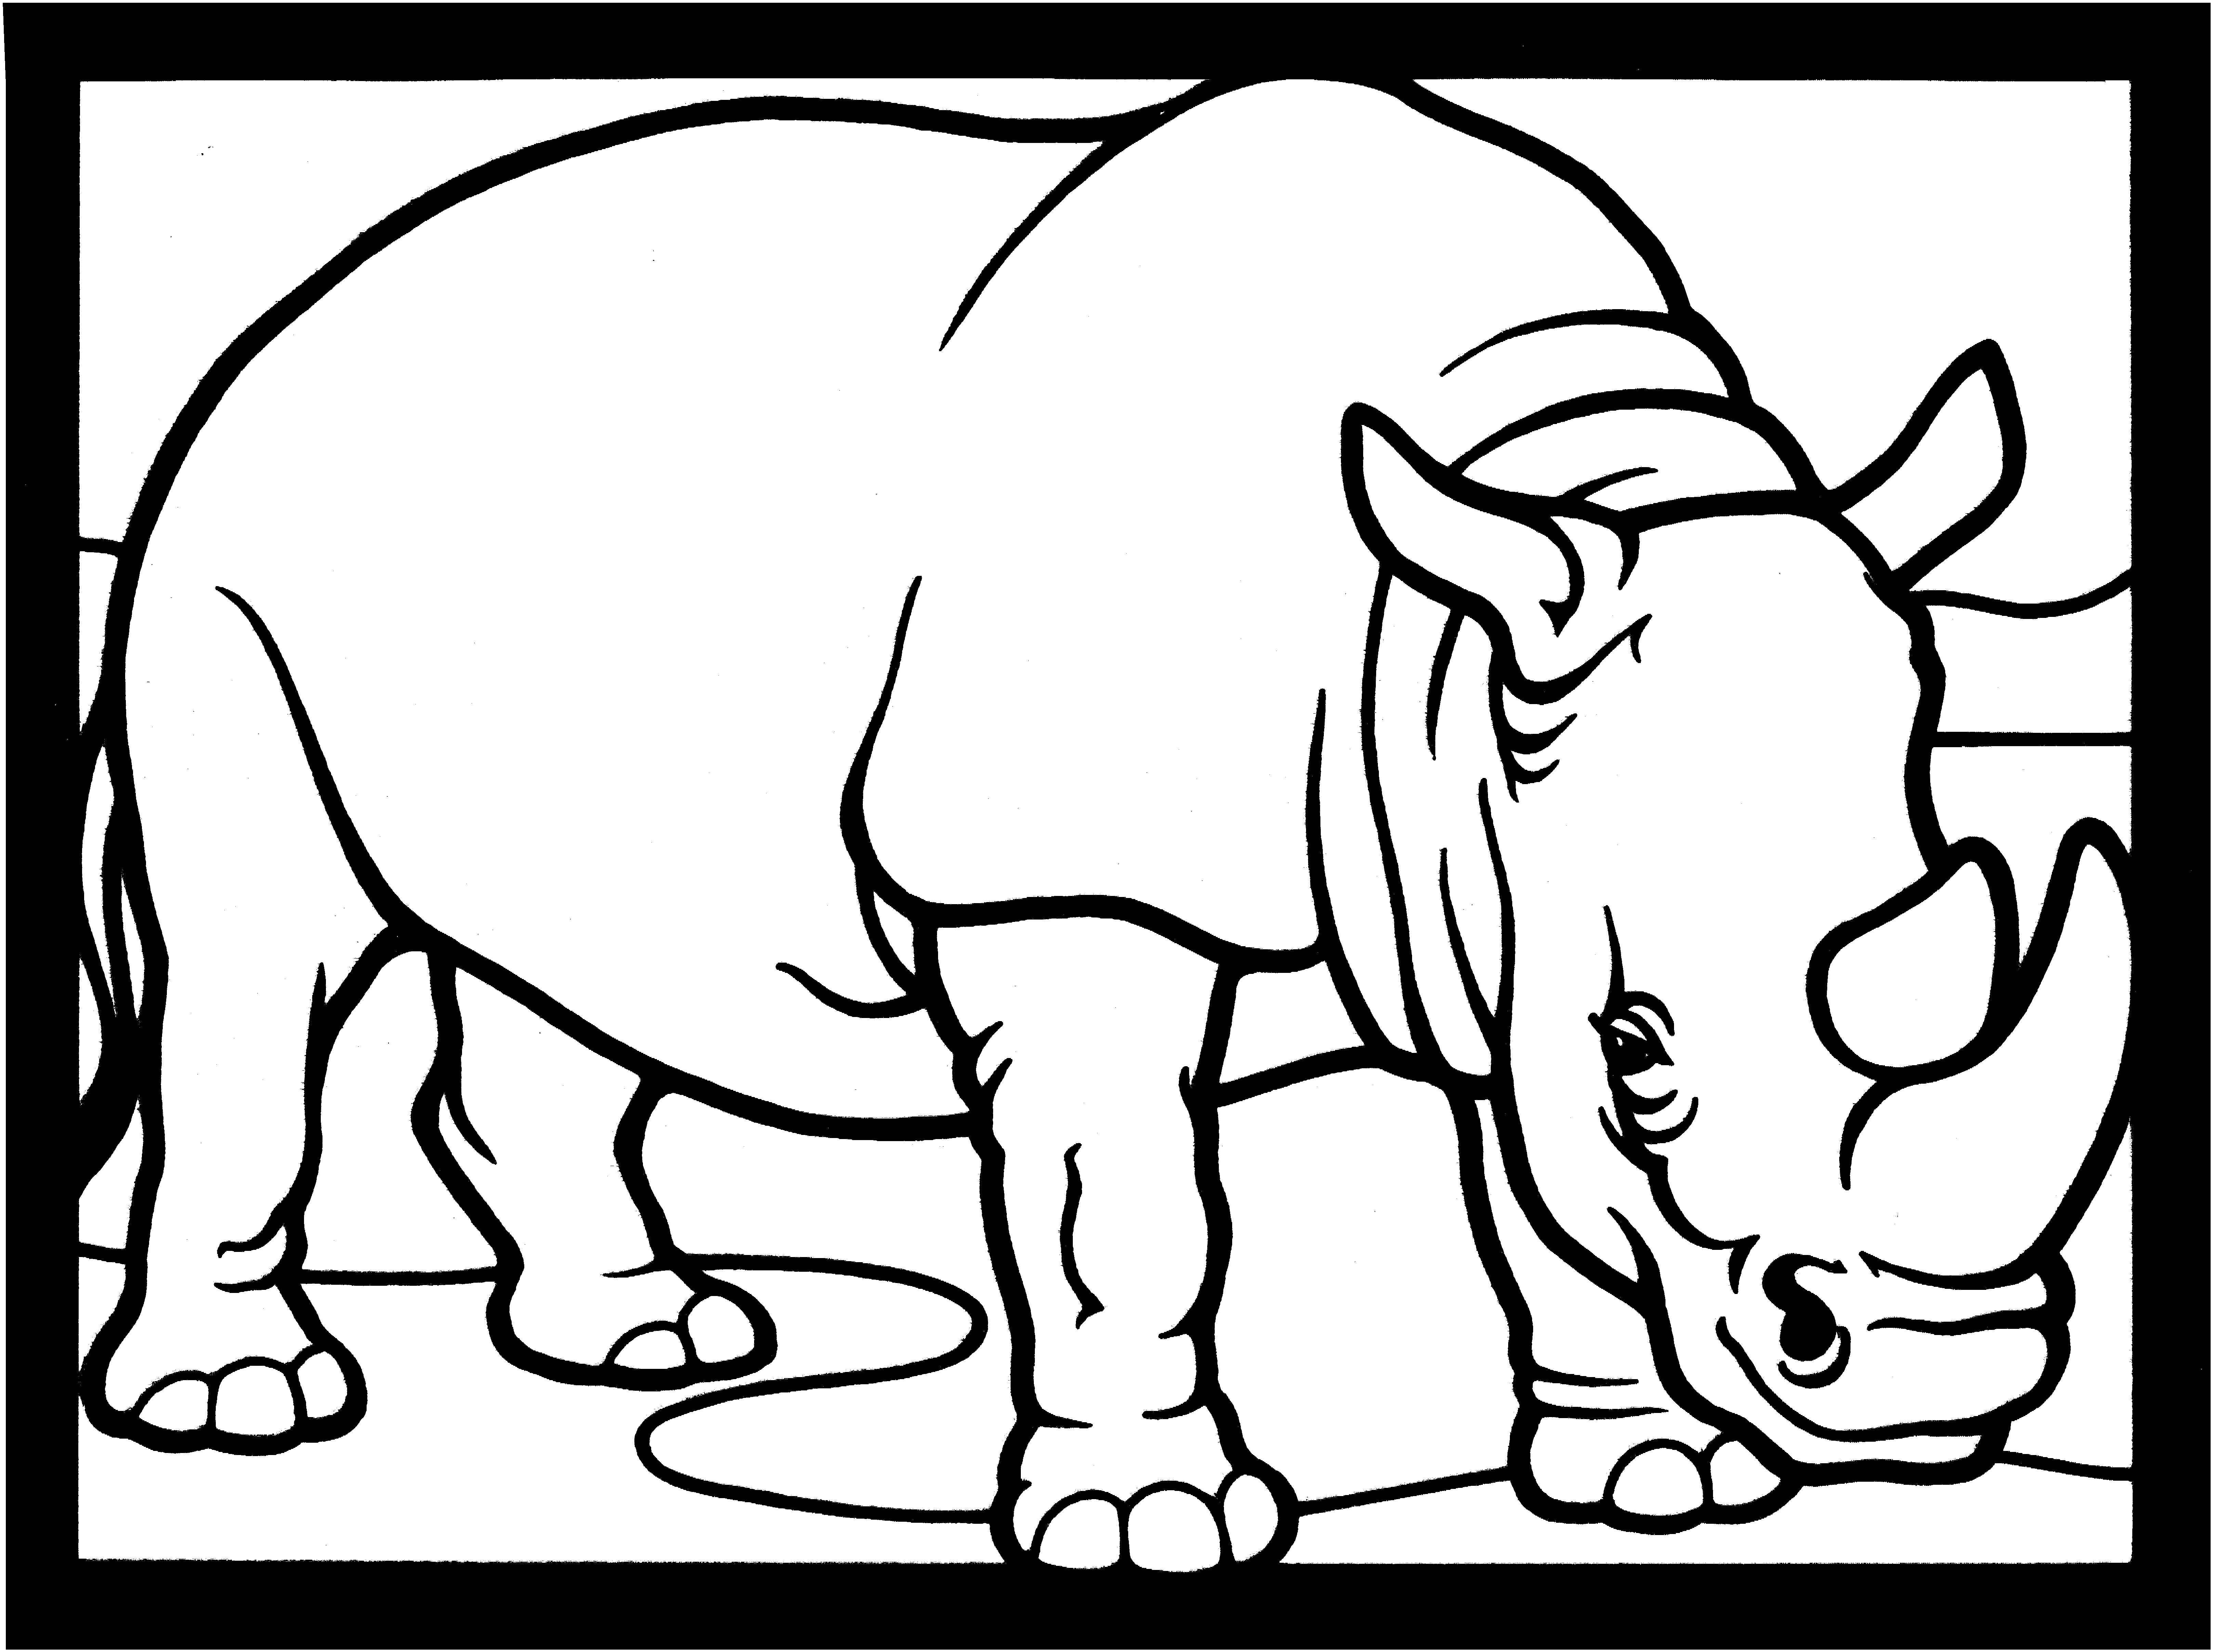 Rhino Coloring Page - Free Rhino Coloring Pages